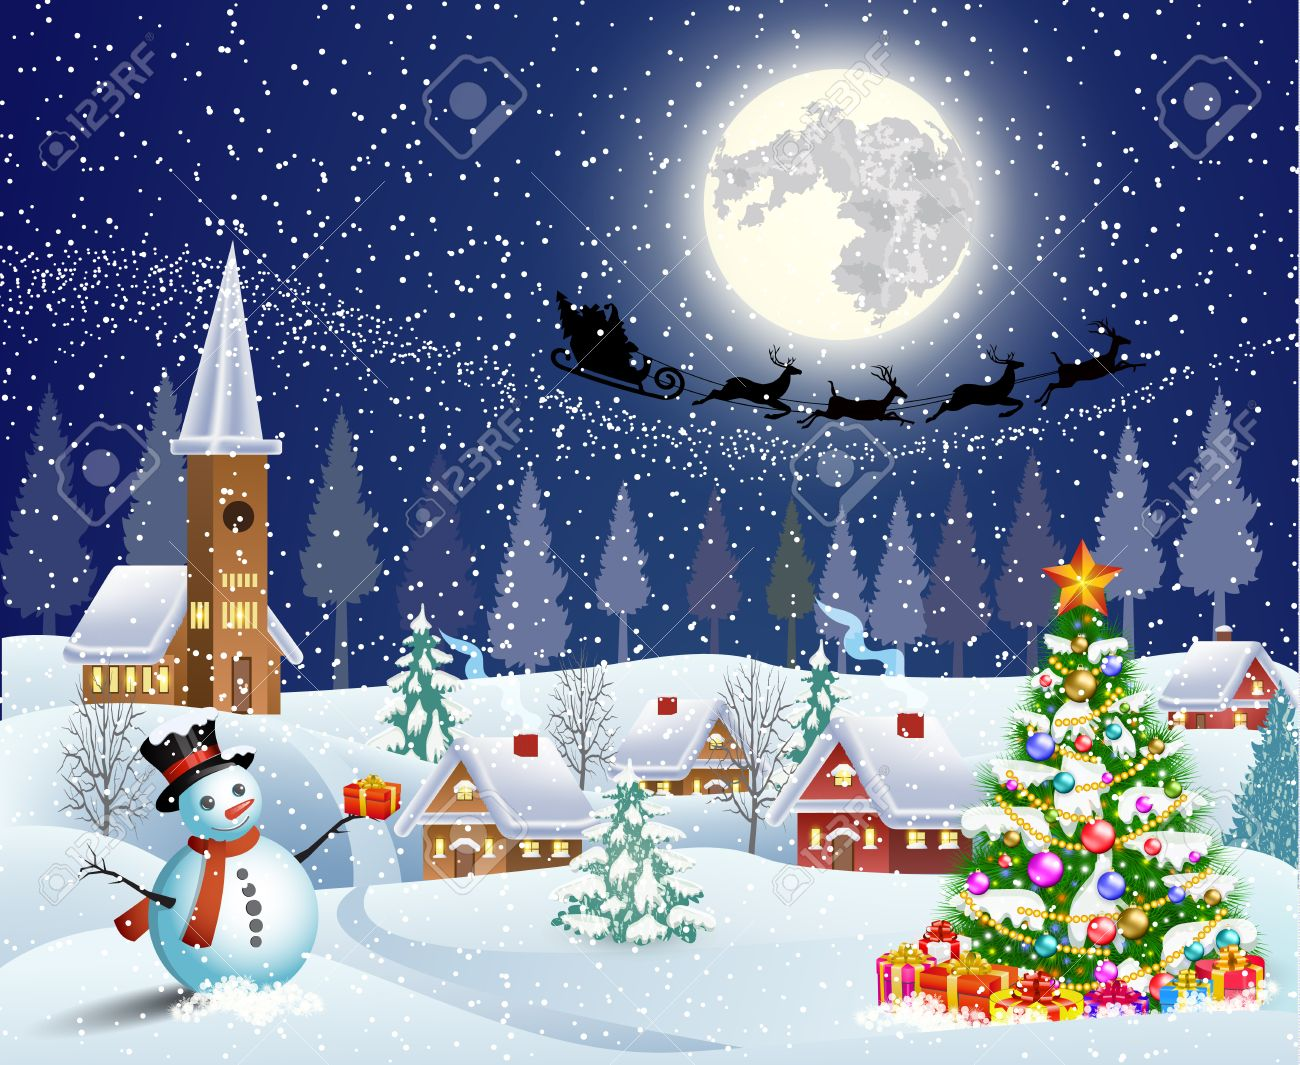 Christmas landscape with christmas tree and snowman with gifbox.  background with moon and the silhouette of Santa Claus flying on a sleigh. concept for greeting or postal card, vector illustration Stock Vector - 46551286